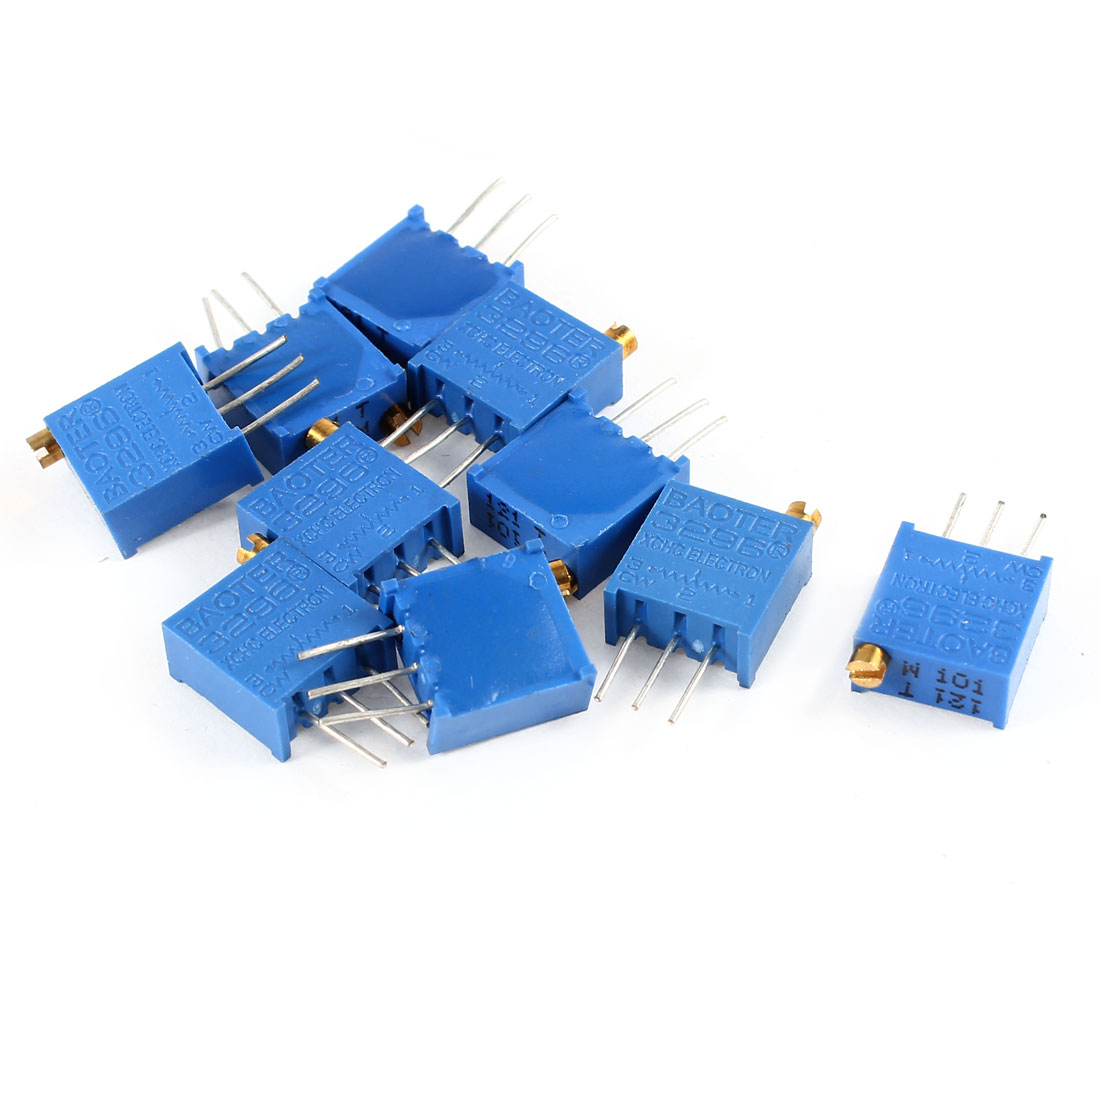 10Pcs 3296W-101 100 ohm 3 Pins High Precision Adjustable Resistor Trim Pot Potentiometer Trimmer